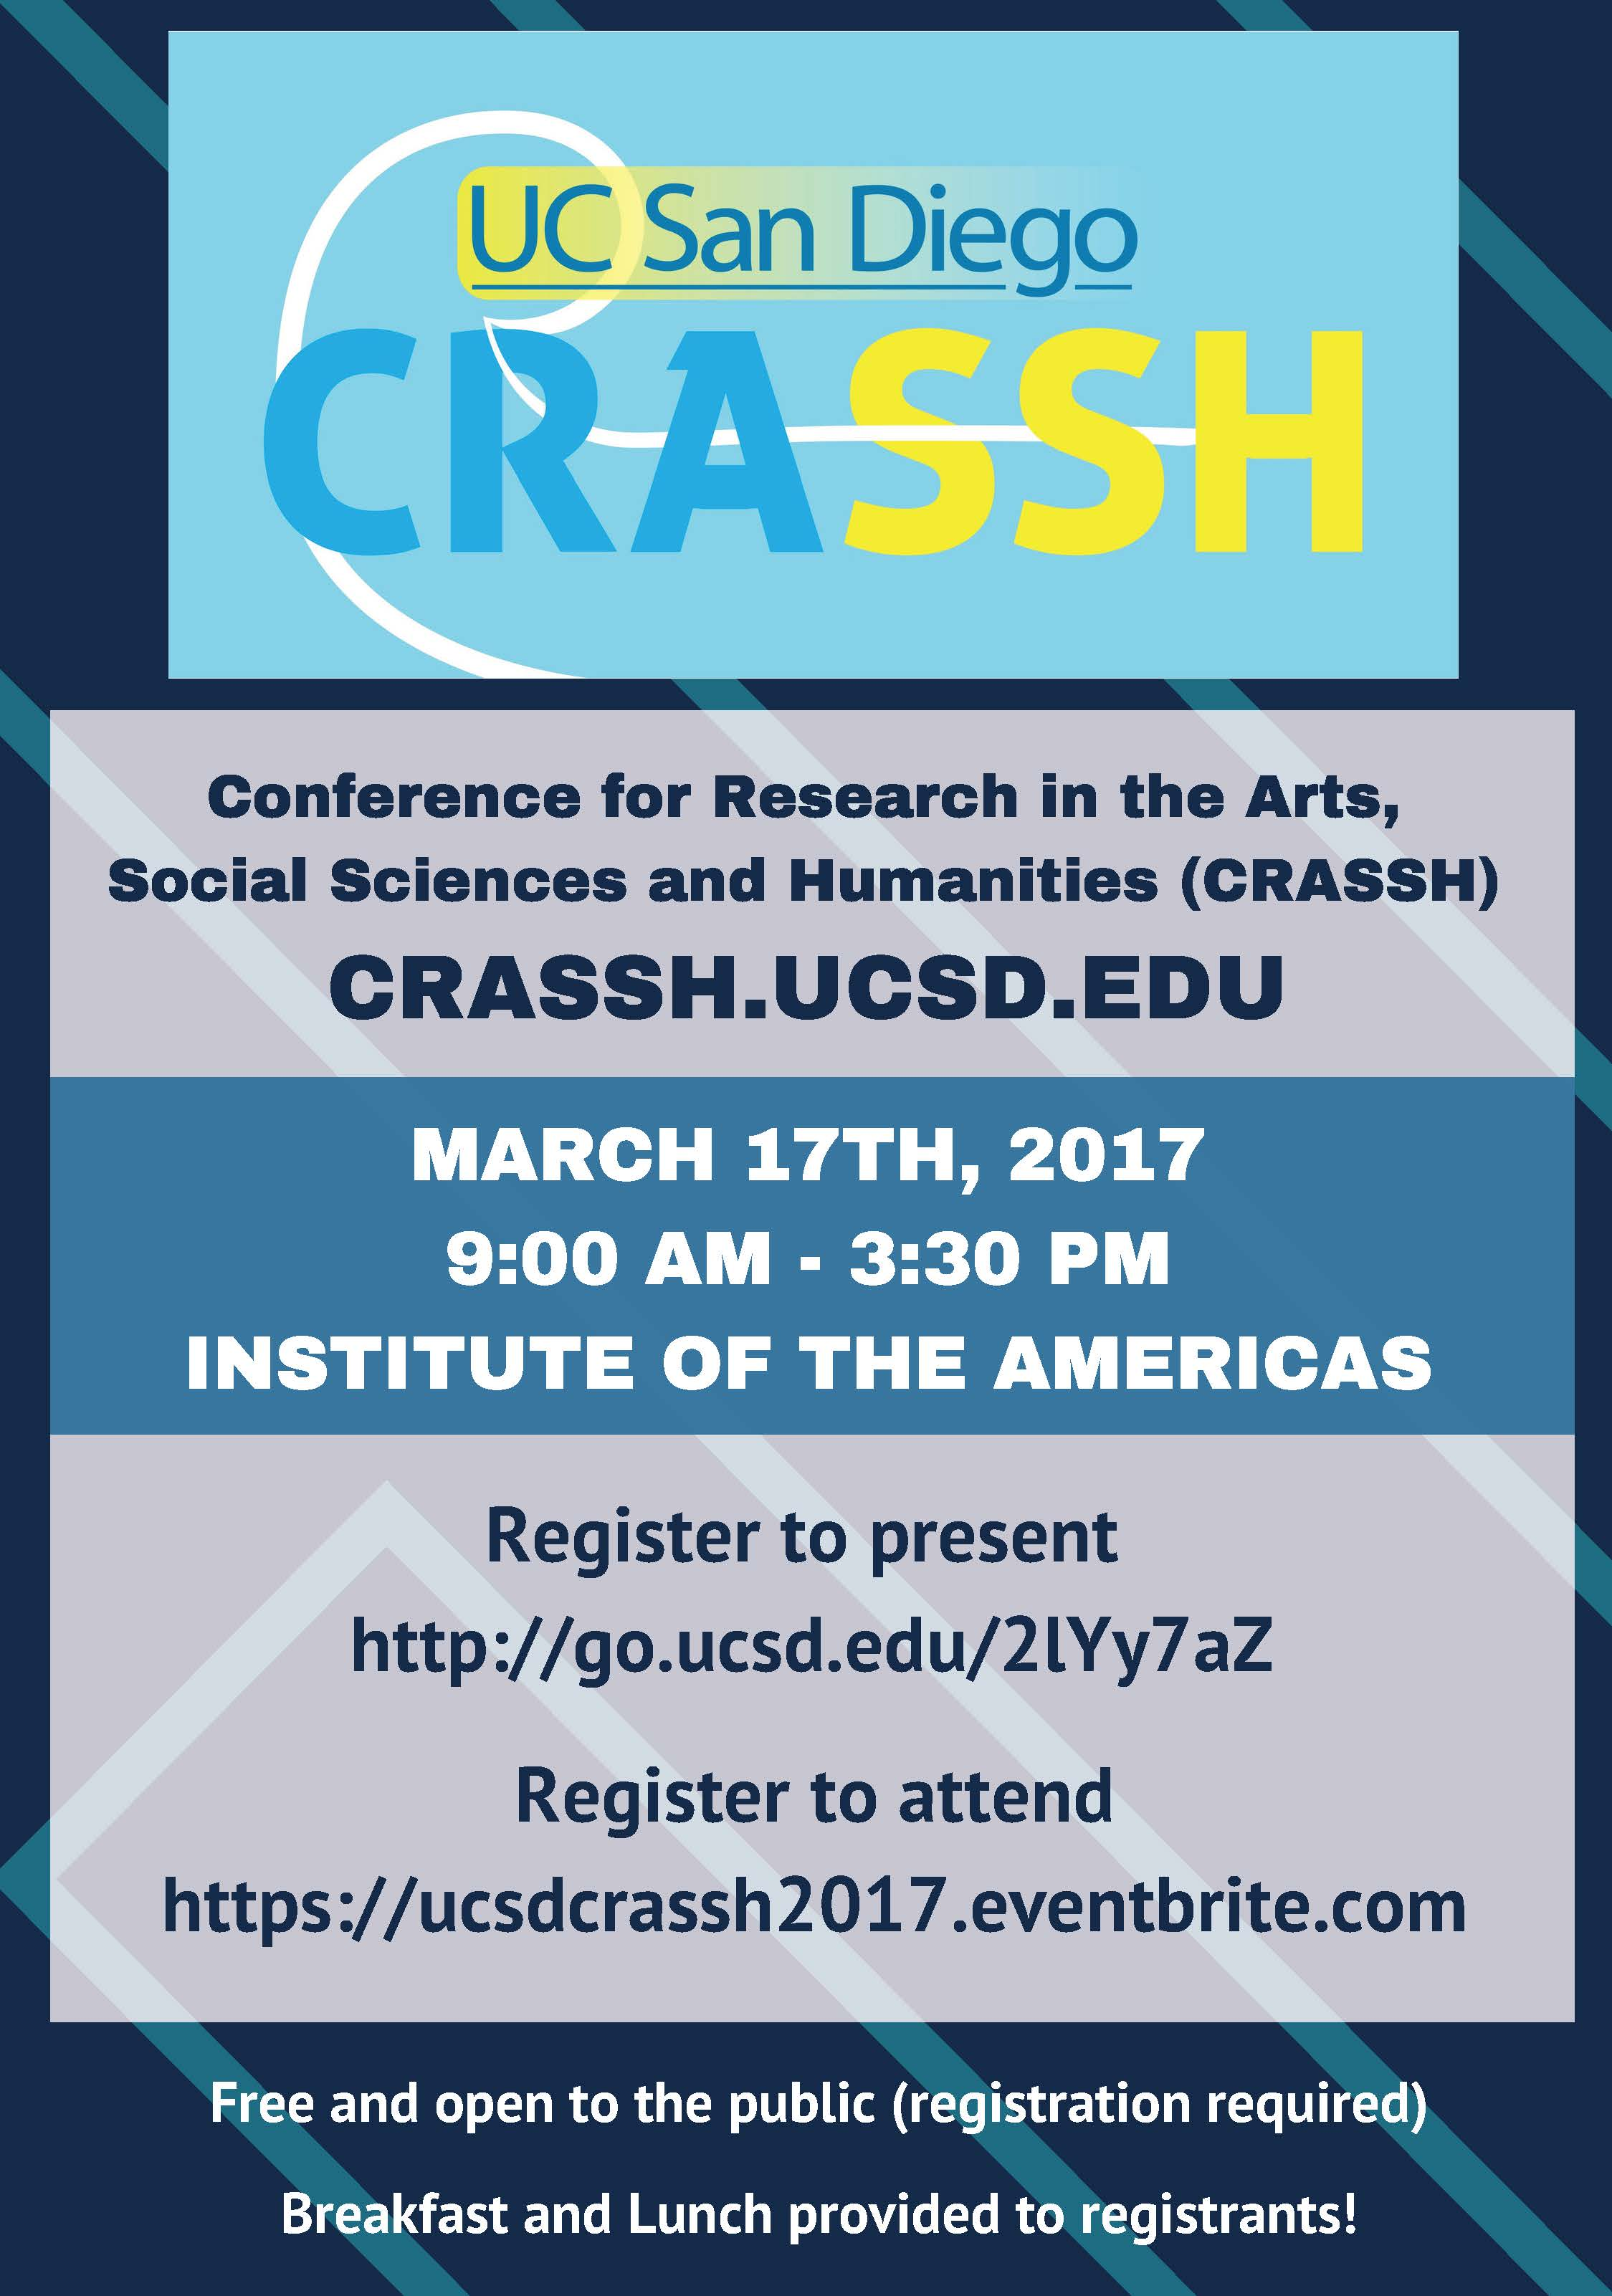 Invitation to the Conference for Research in the Arts Social